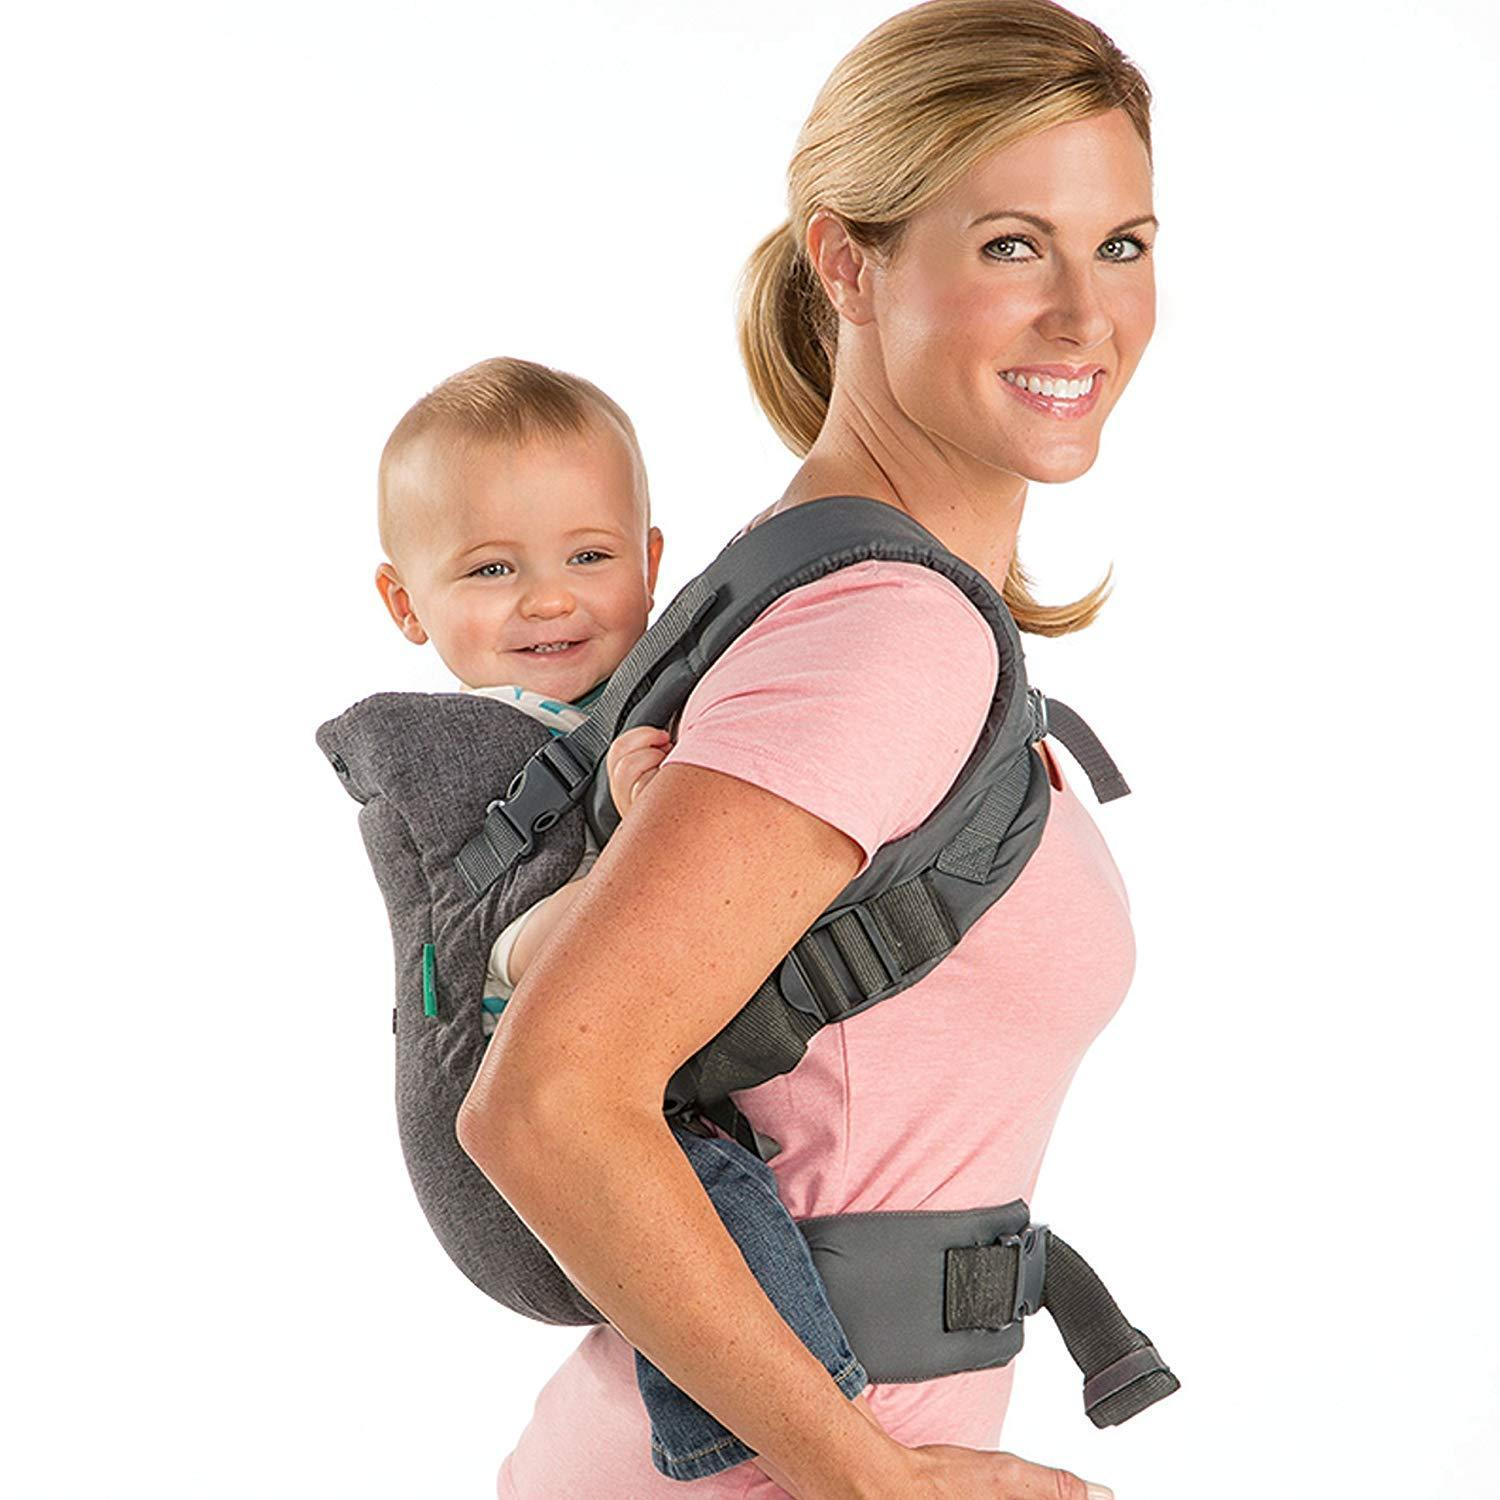 Infantino's Flip 4-in-1 Convertible Carrier